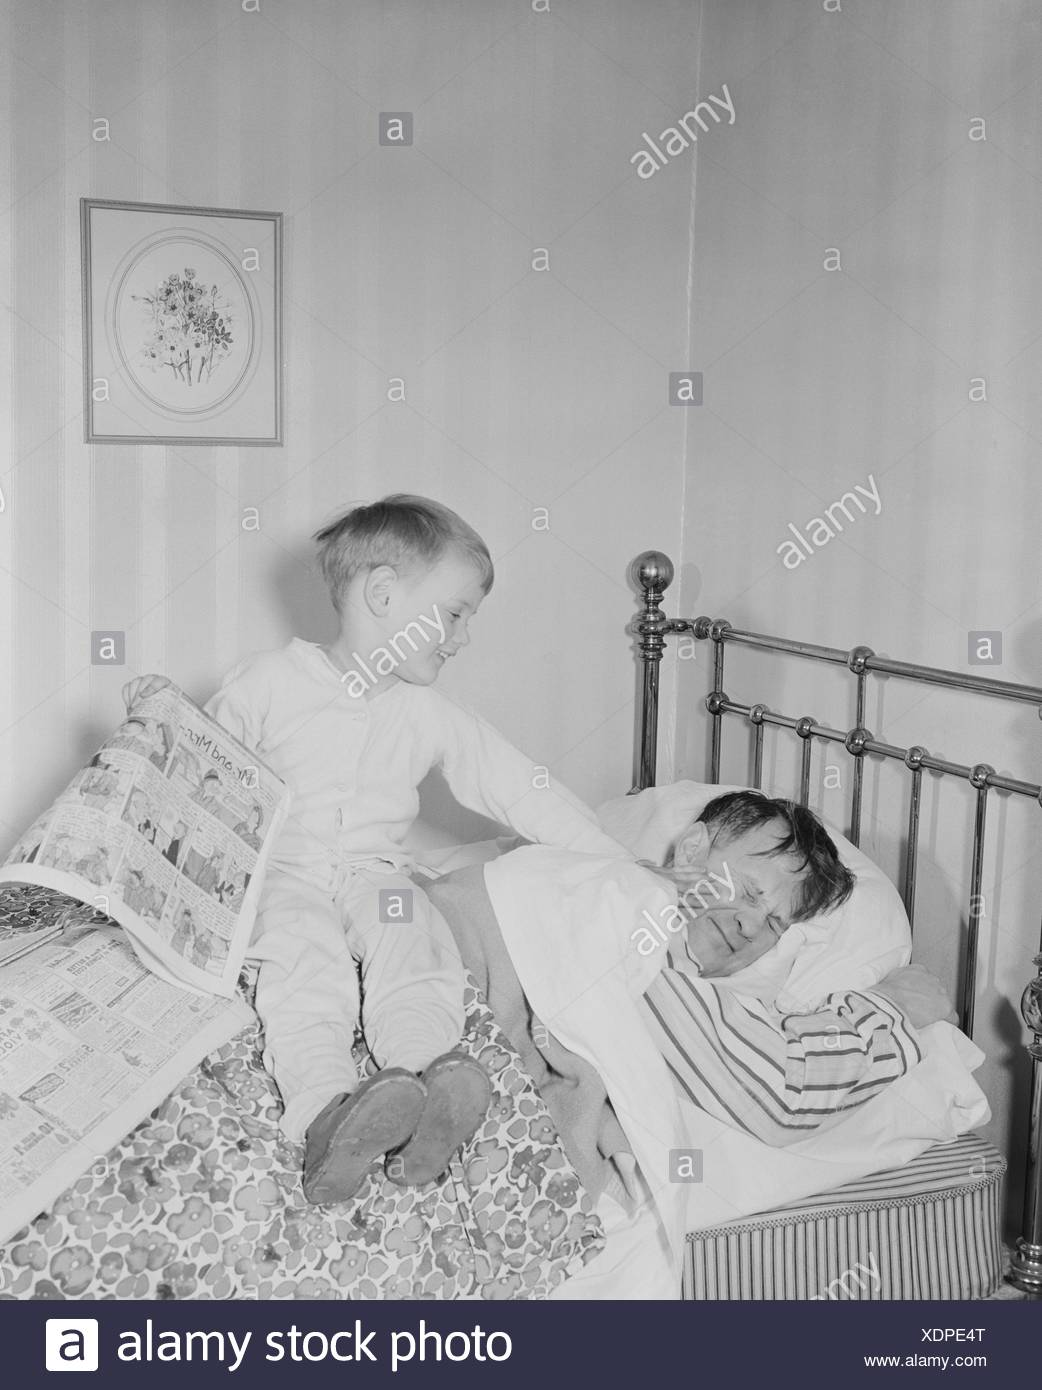 Boy waking father in bedroom - Stock Image